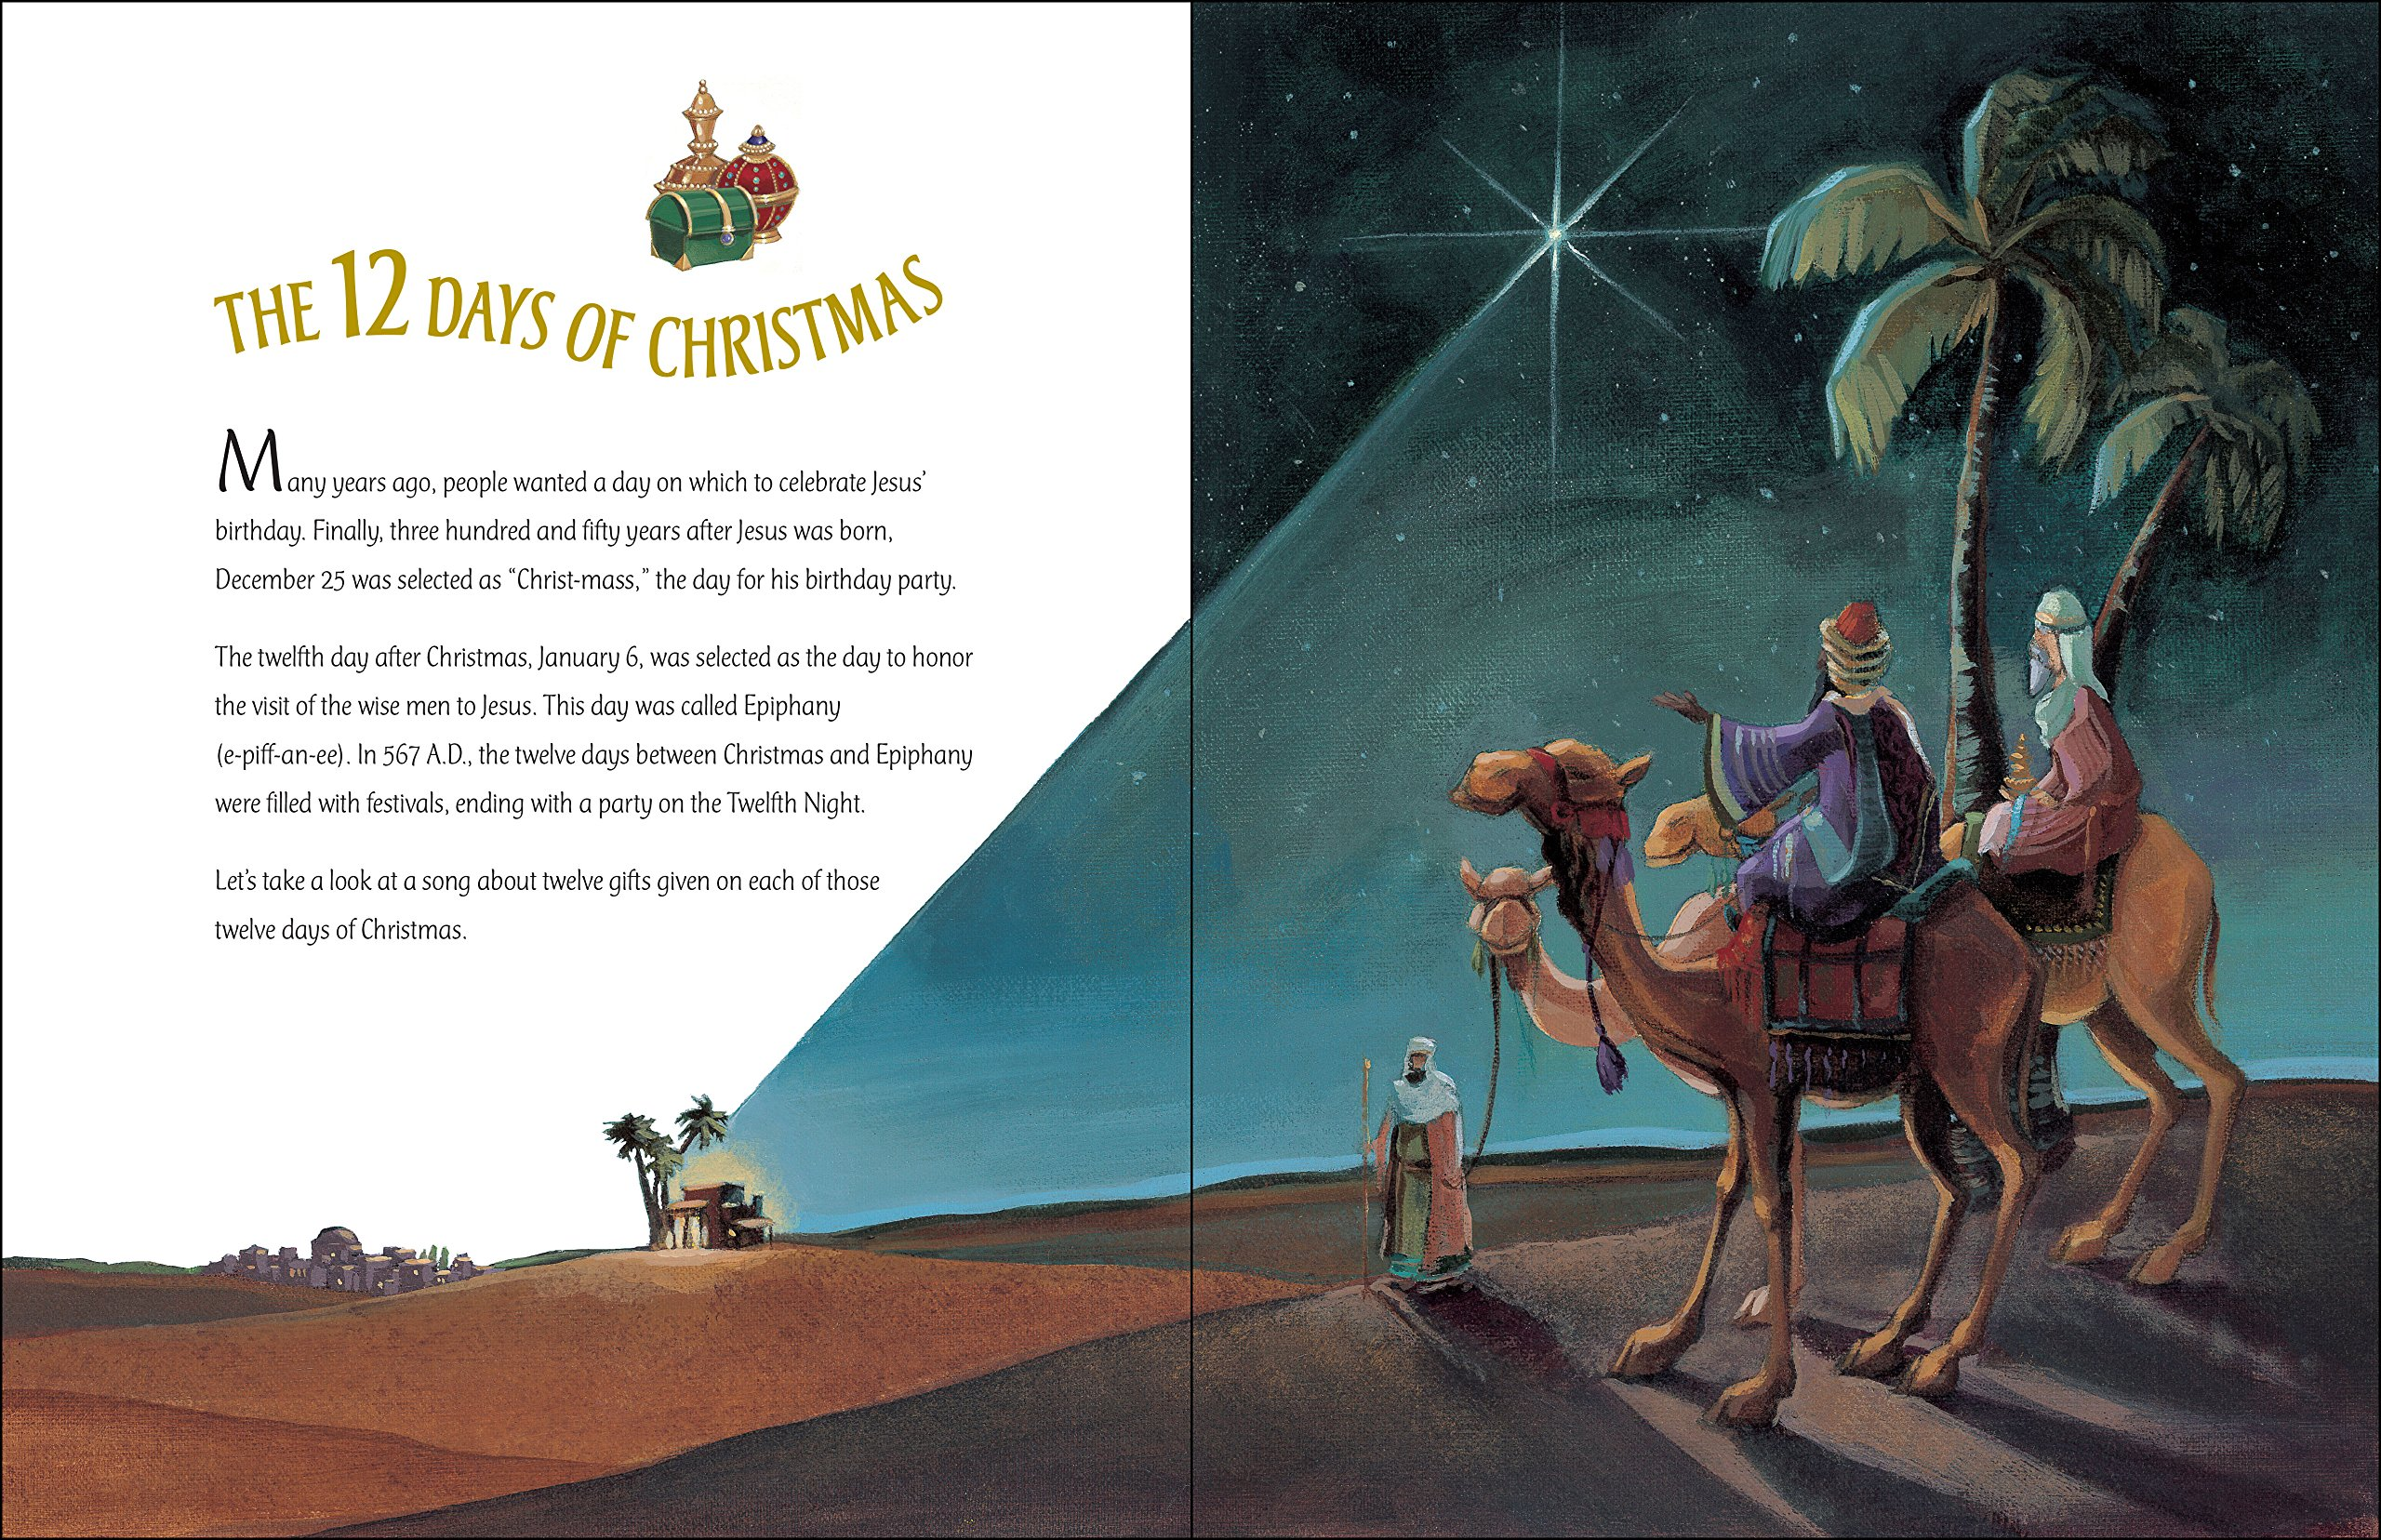 Us cellular 12 days of christmas giveaways for churches